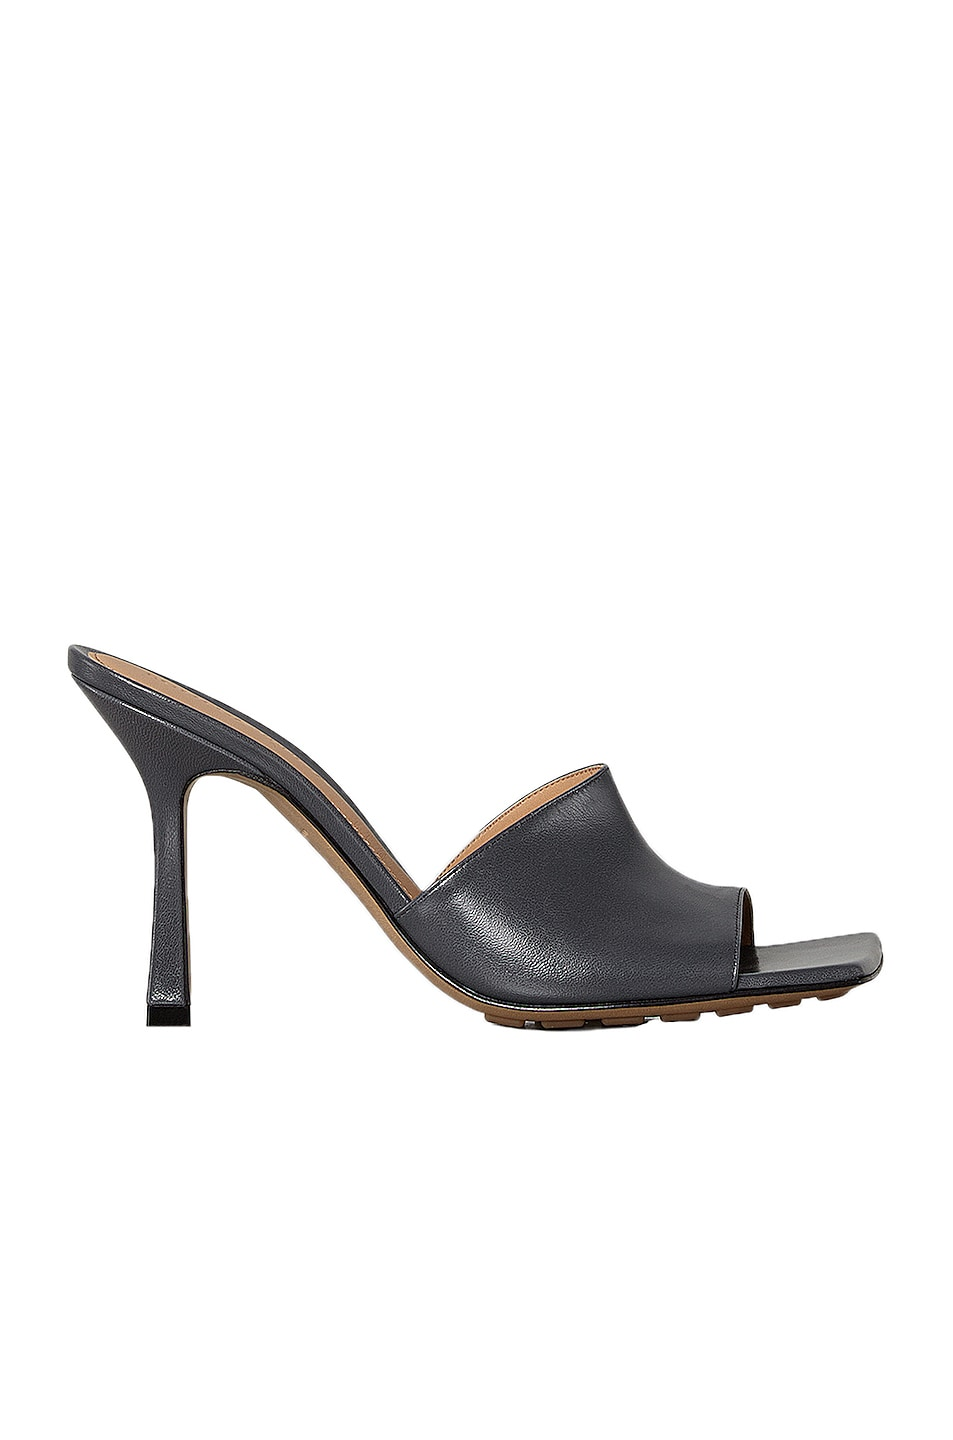 Image 1 of Bottega Veneta Leather Mules in Light Graphite